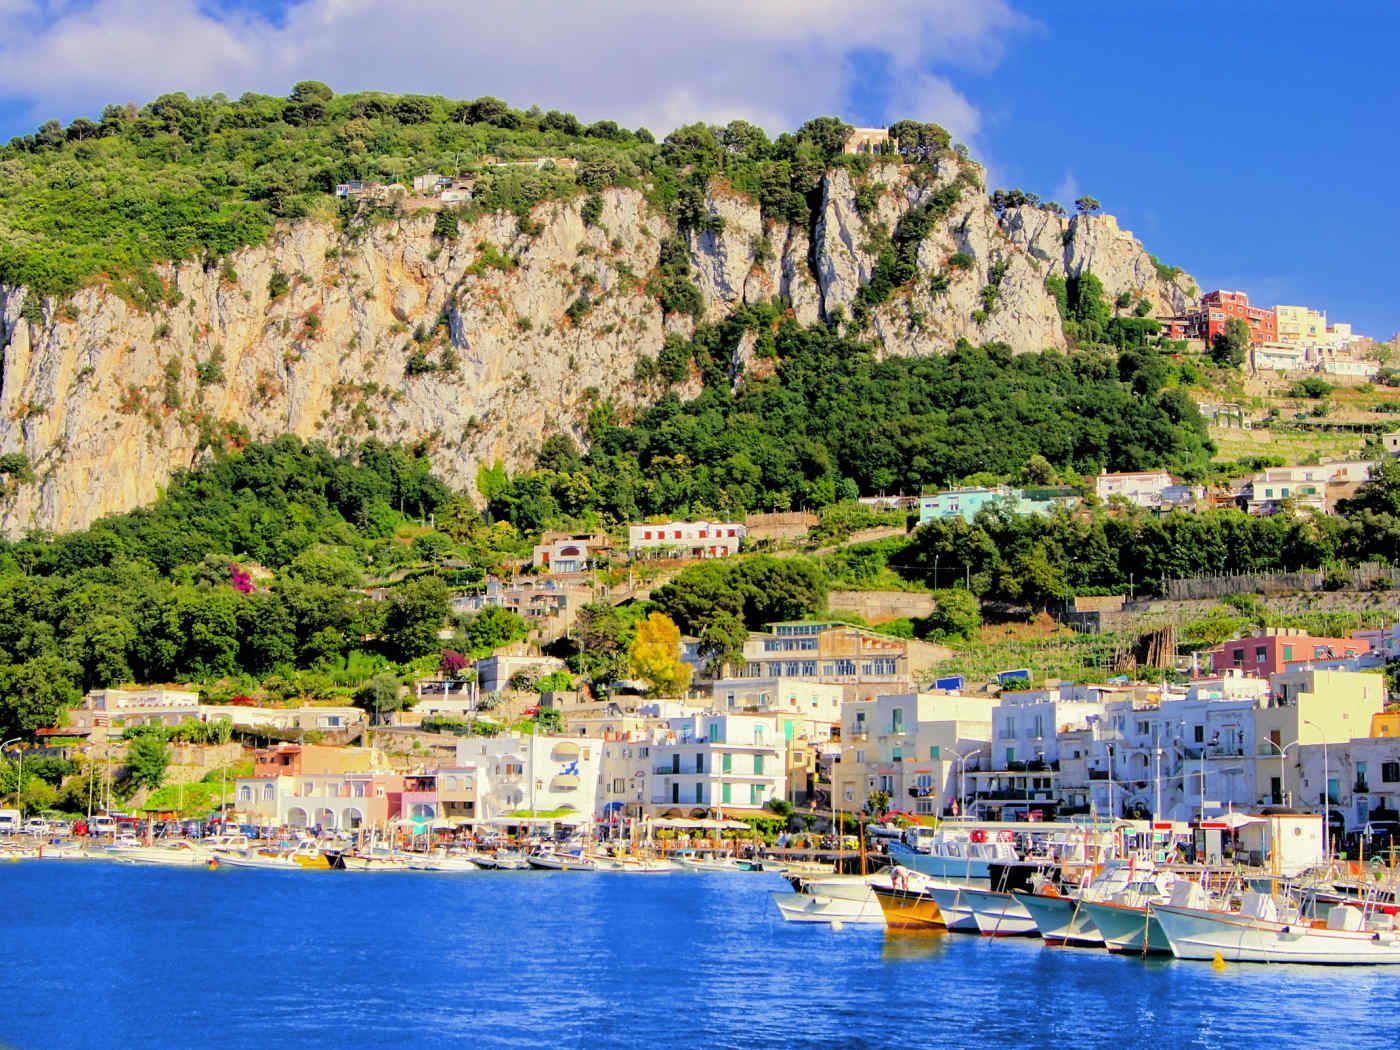 Coast of Capri in Italy